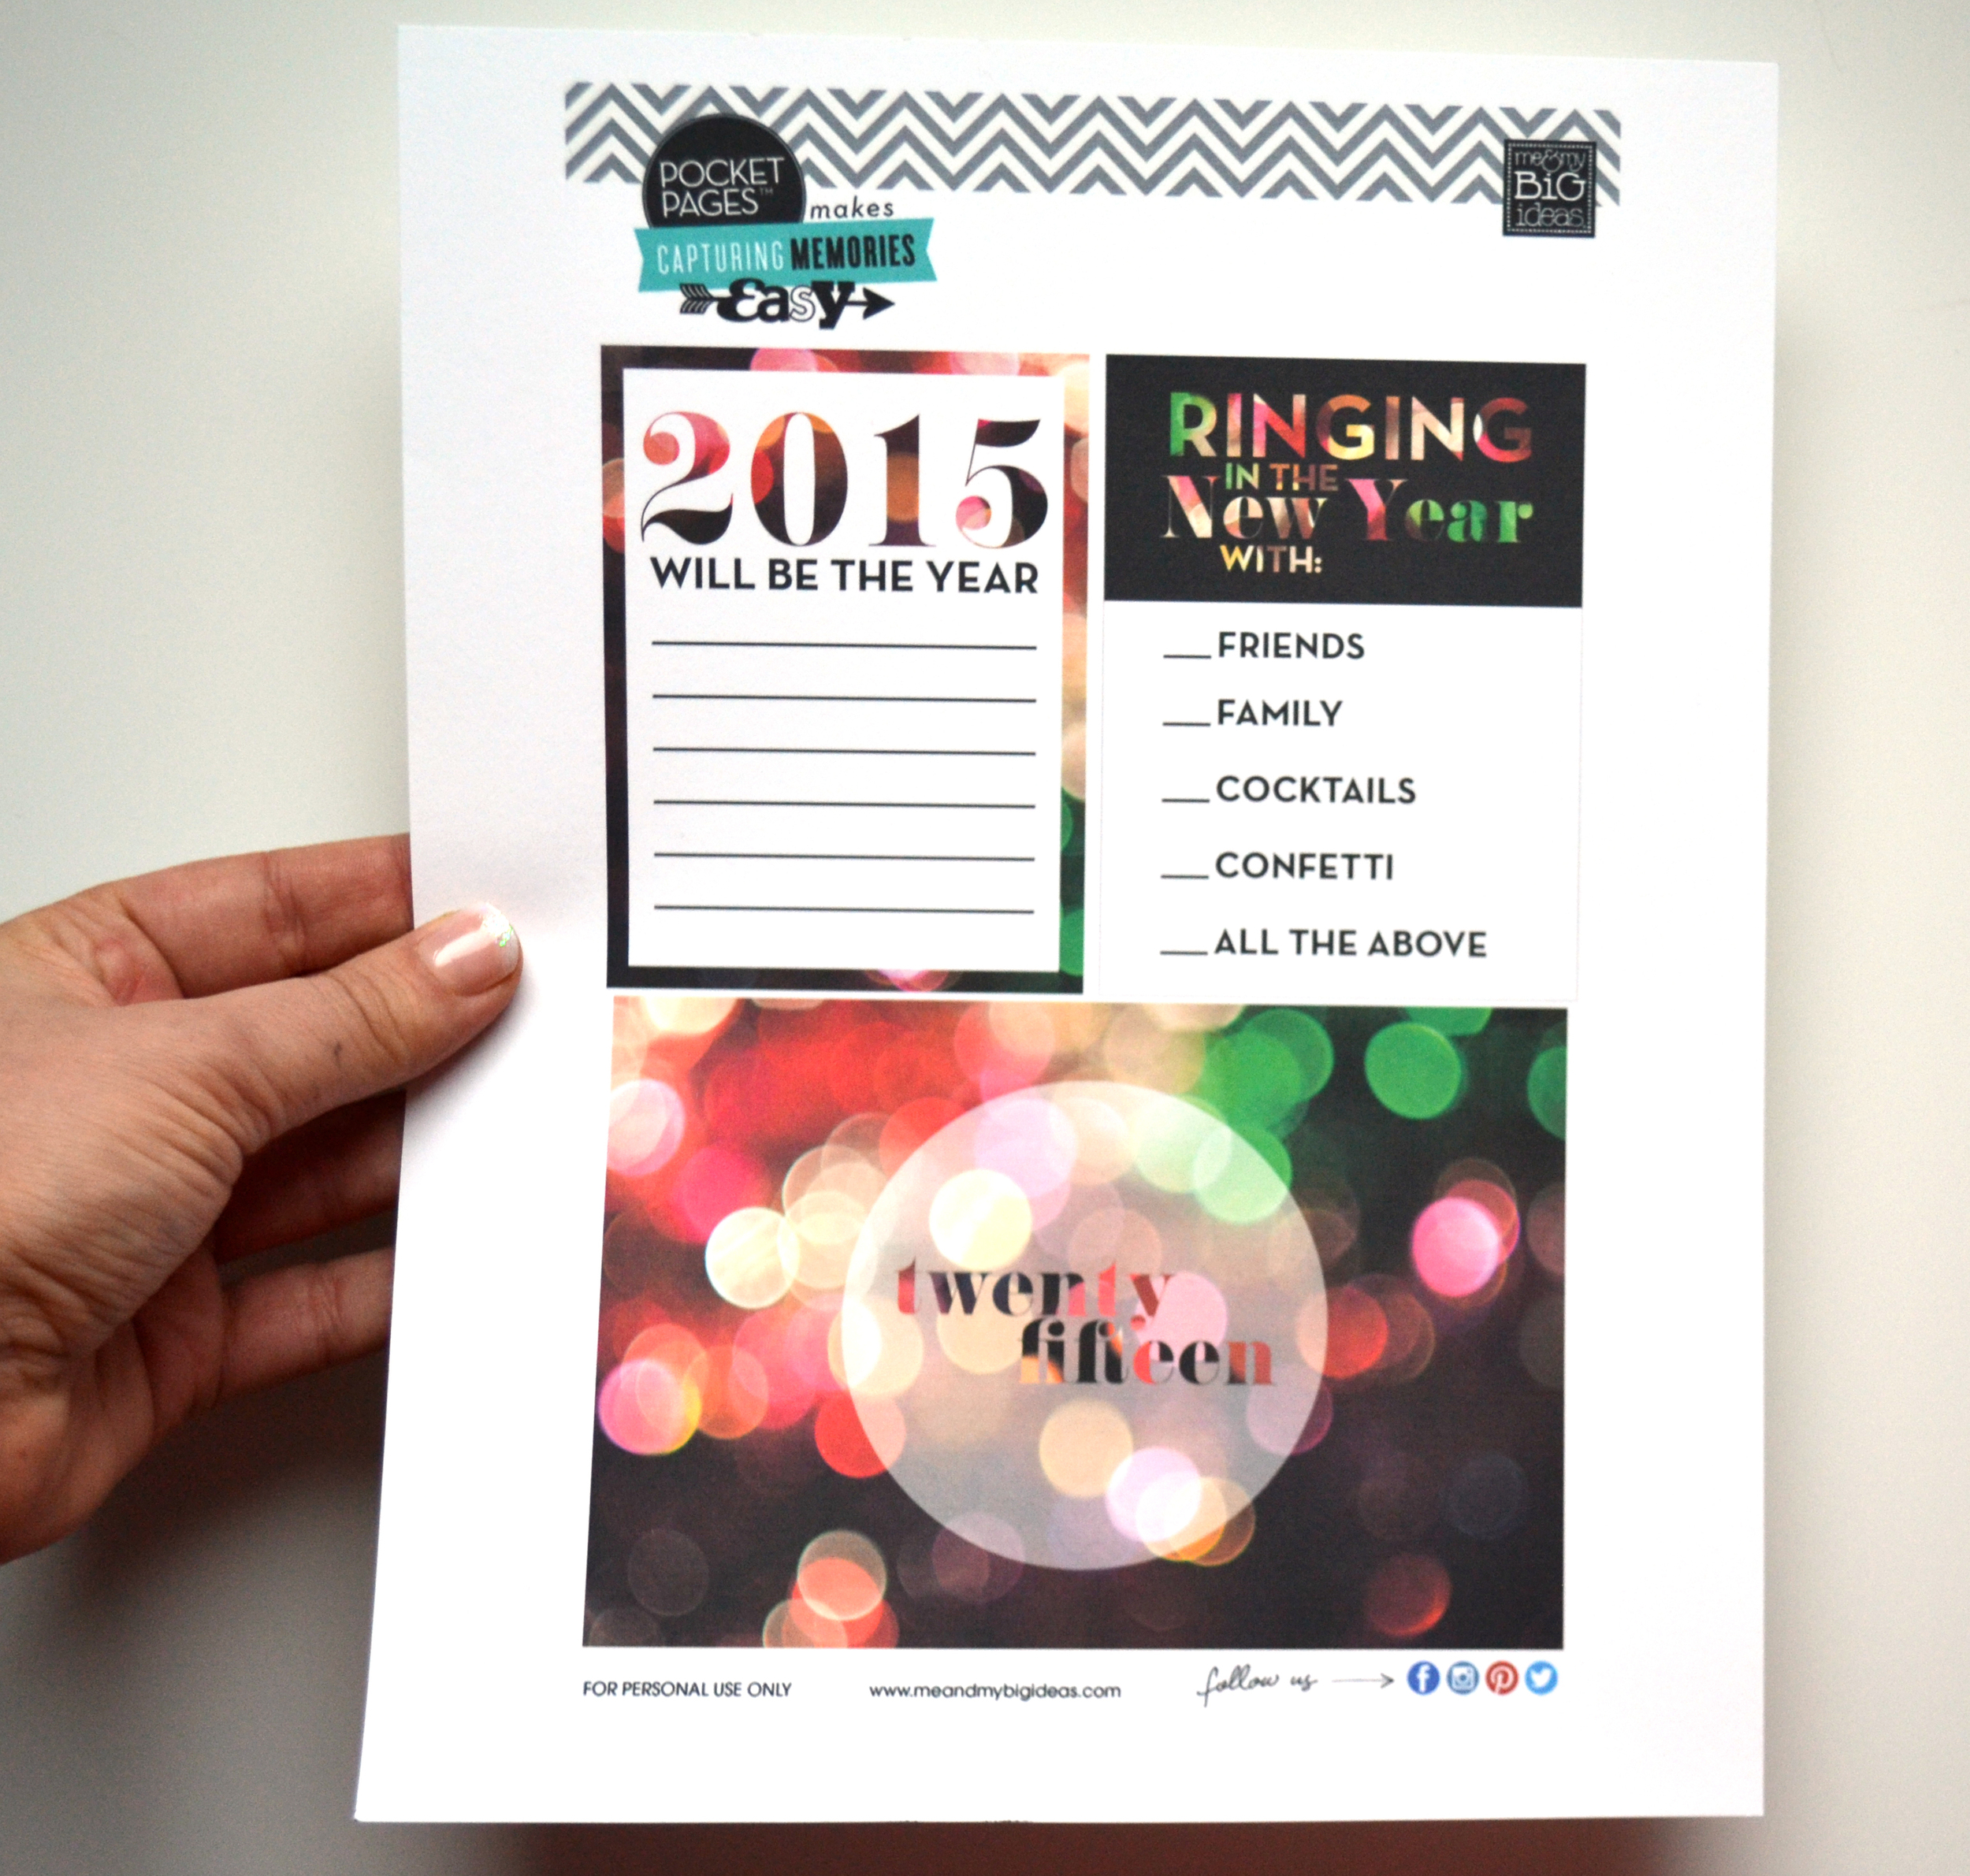 New Year 2015 Free POCKET PAGES™ Printable | me & my BIG ideas